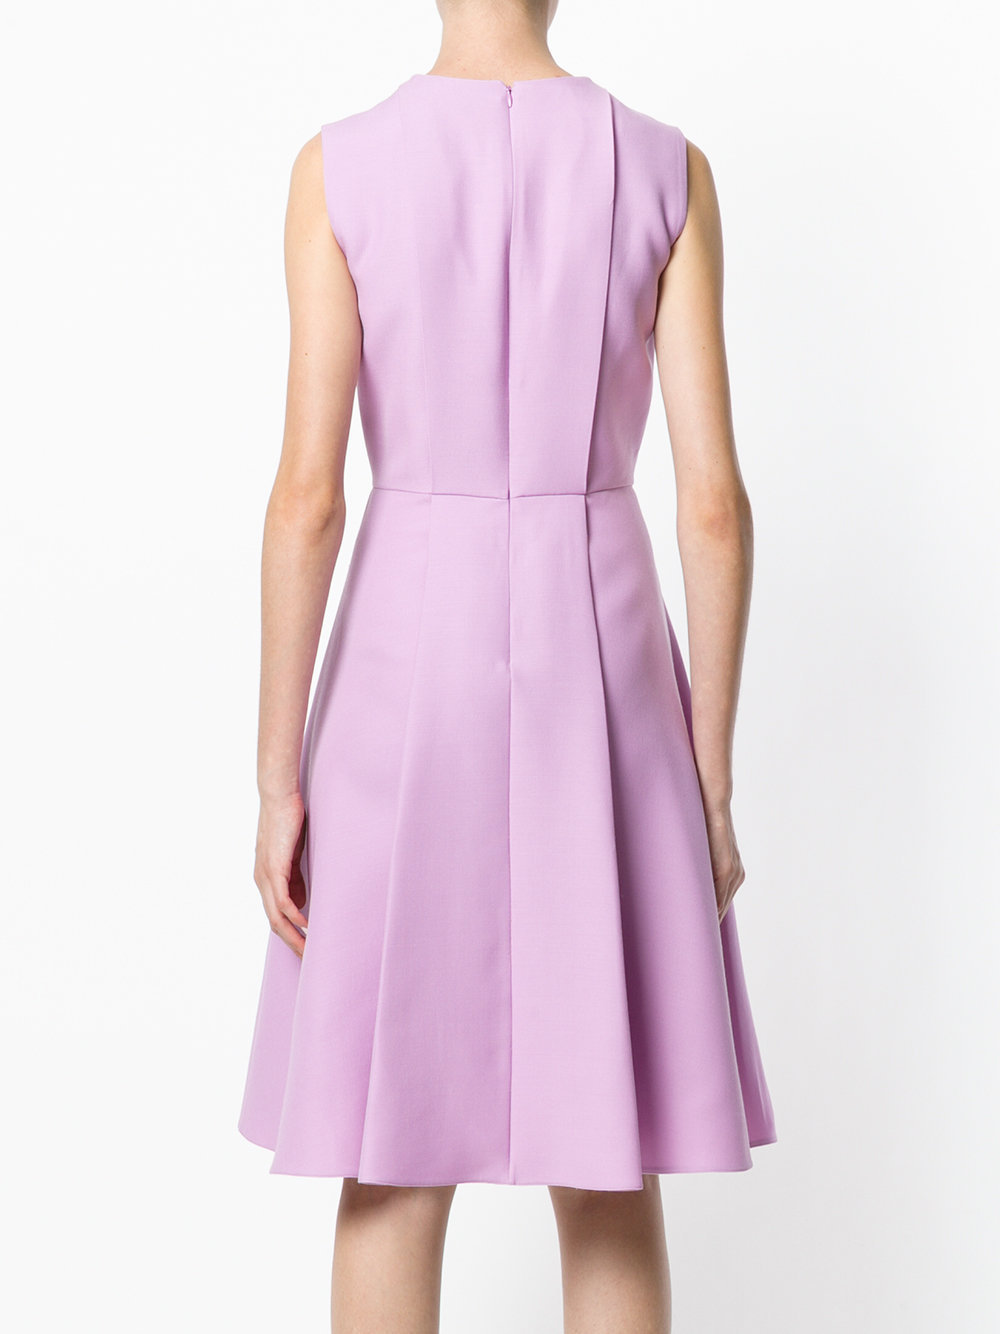 17-18AW V779 CREPE COUTURE FLARE DRESS